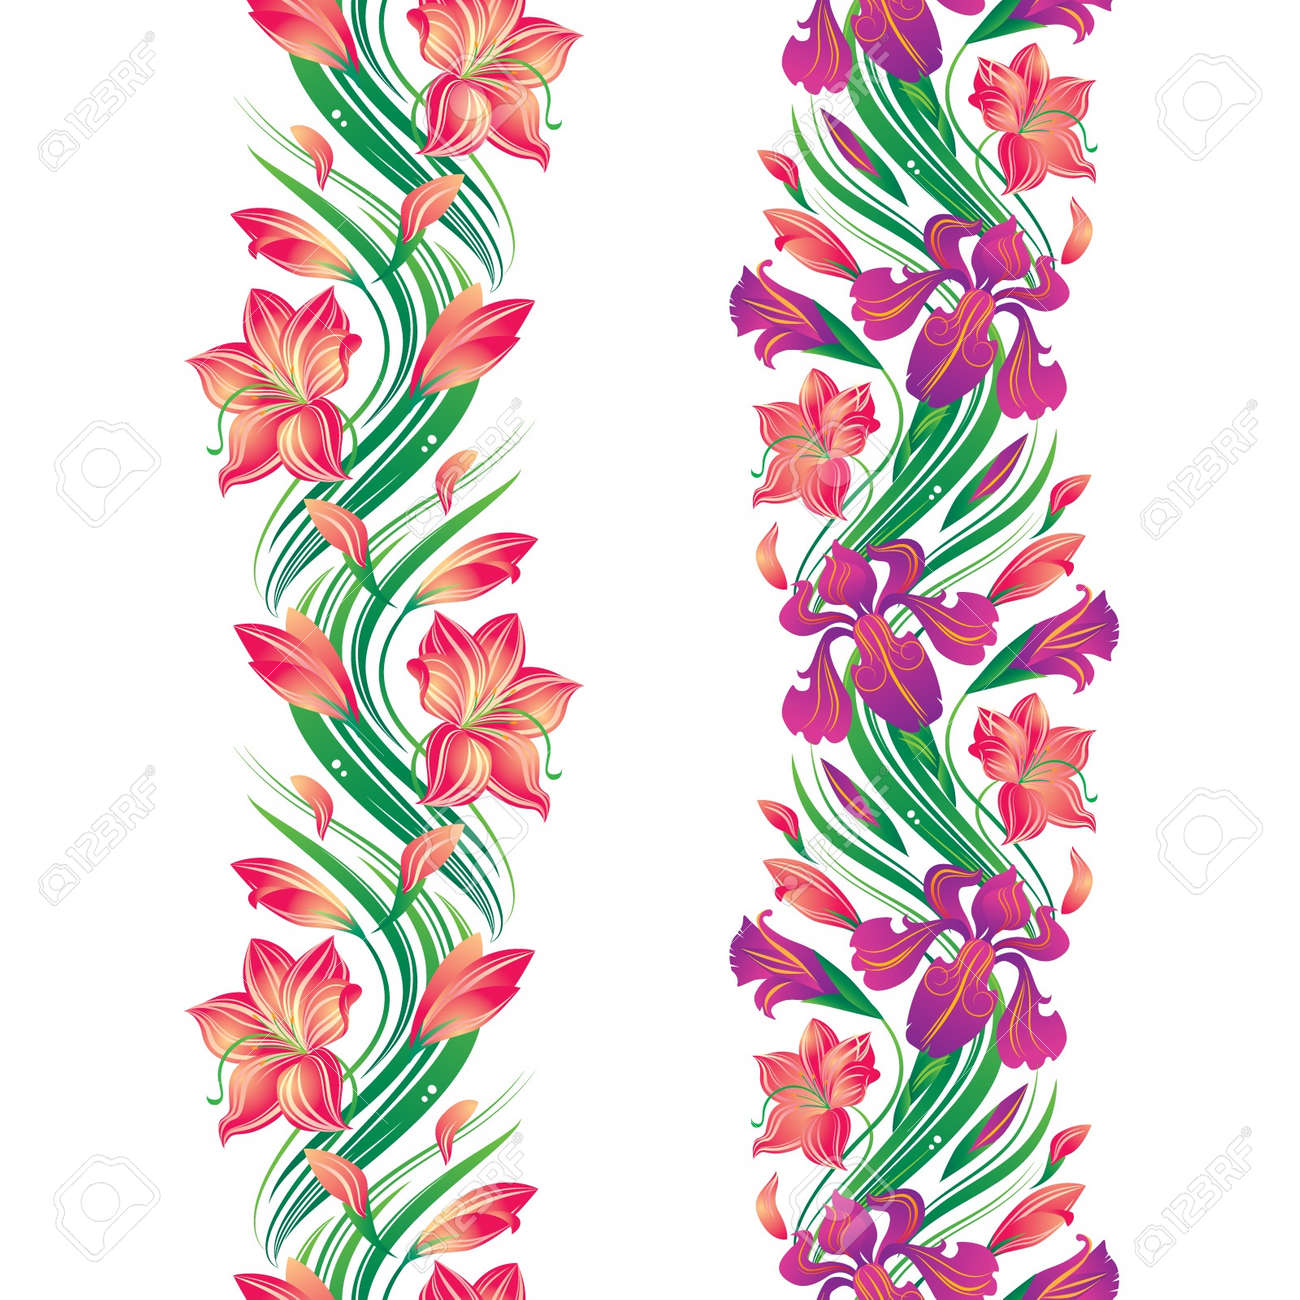 Seamless flower border with irises and lilies Stock Vector - 16622222